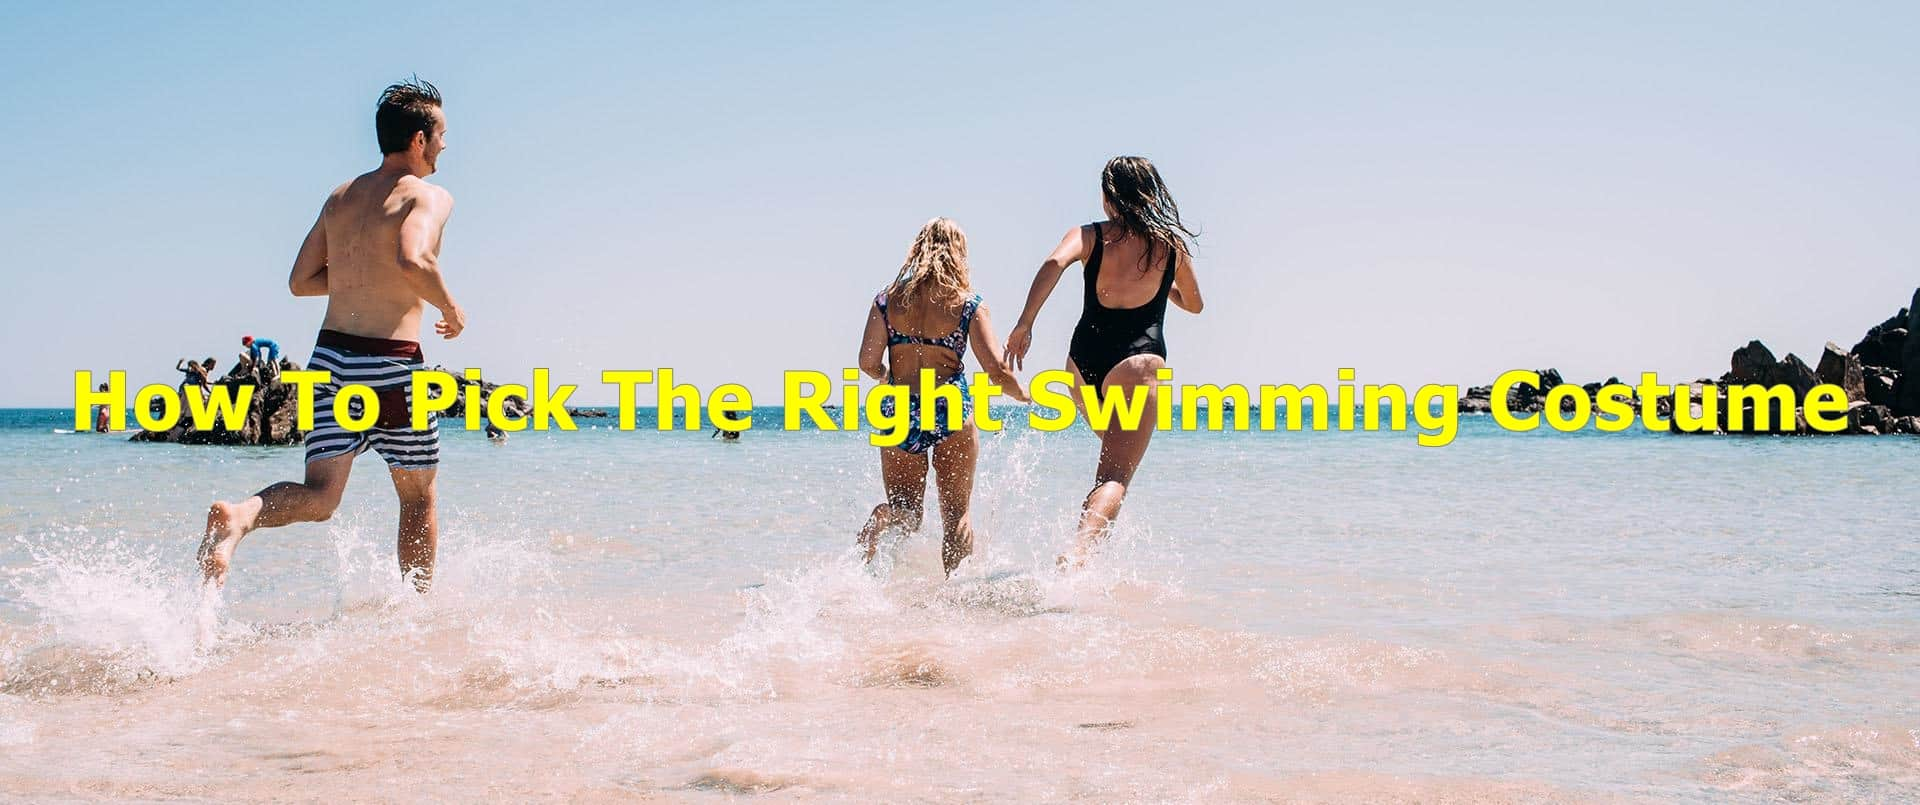 Pick-The-Right-Swimming-Costume